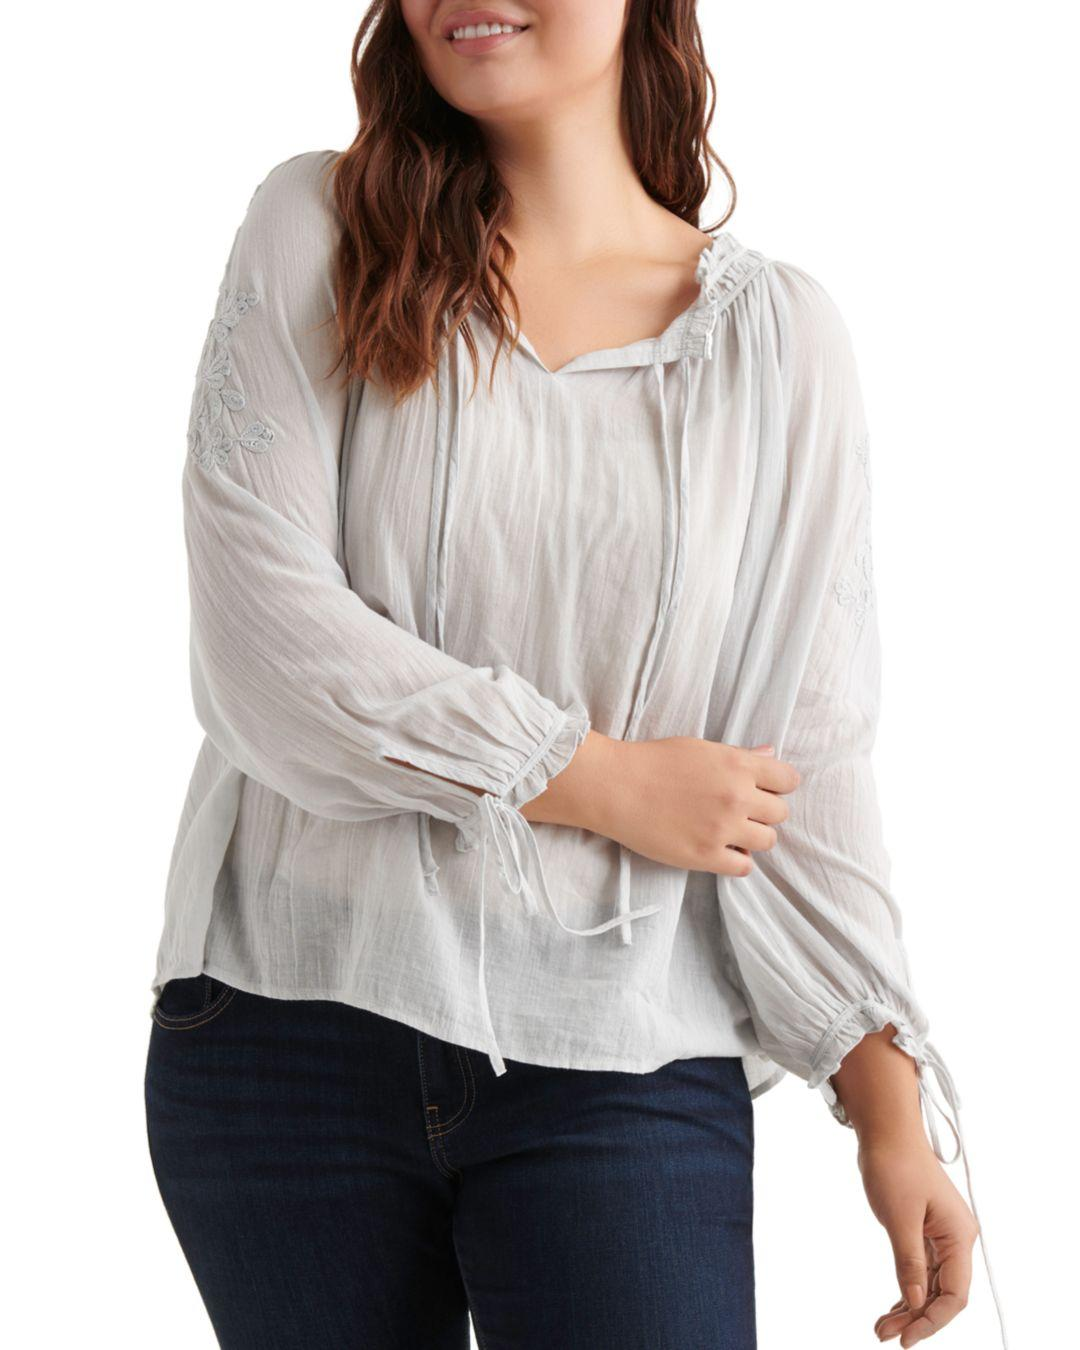 084bcba29d272 Lyst - Lucky Brand Embroidered Peasant Top in Gray - Save 25%